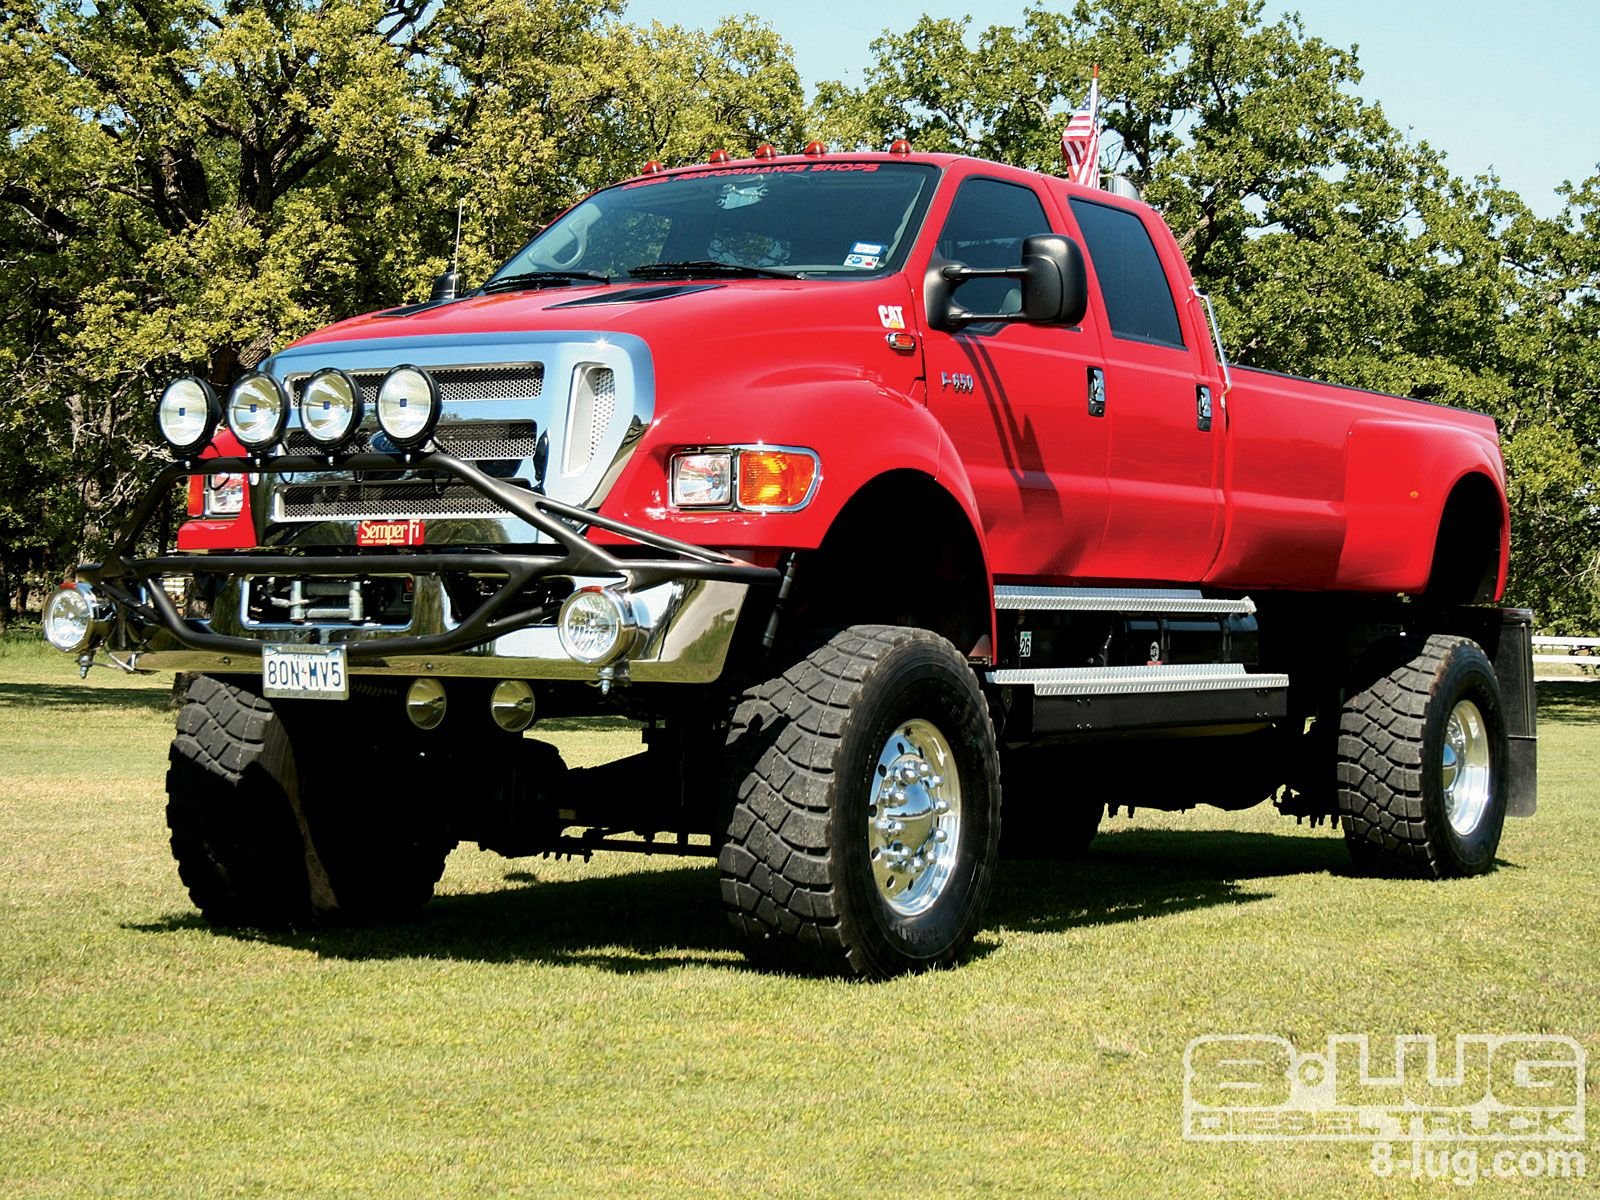 Ford F750 Super Duty >> F850 Pickup | www.pixshark.com - Images Galleries With A Bite!